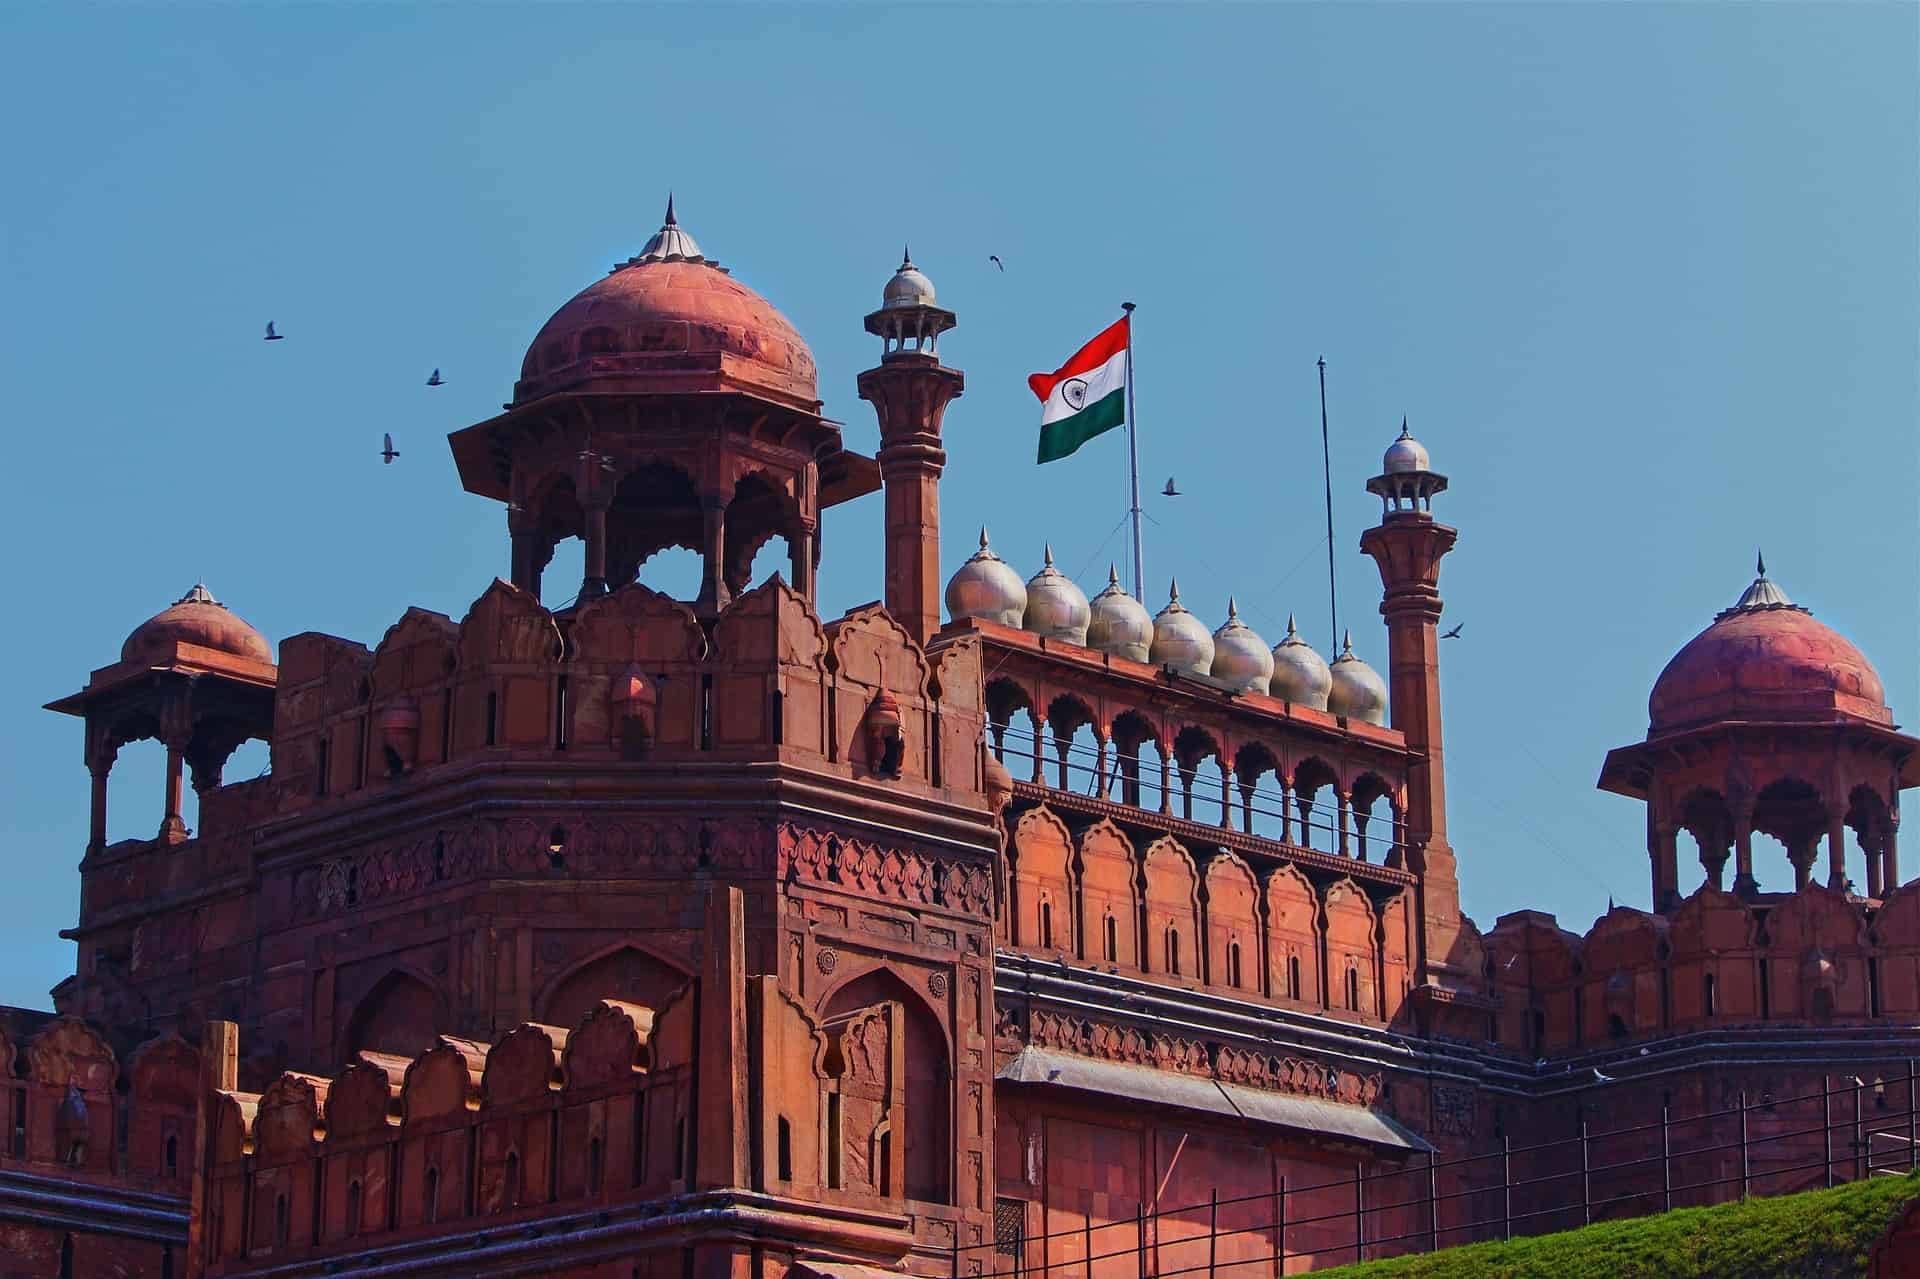 The Indian flag flies high at the Red Fort